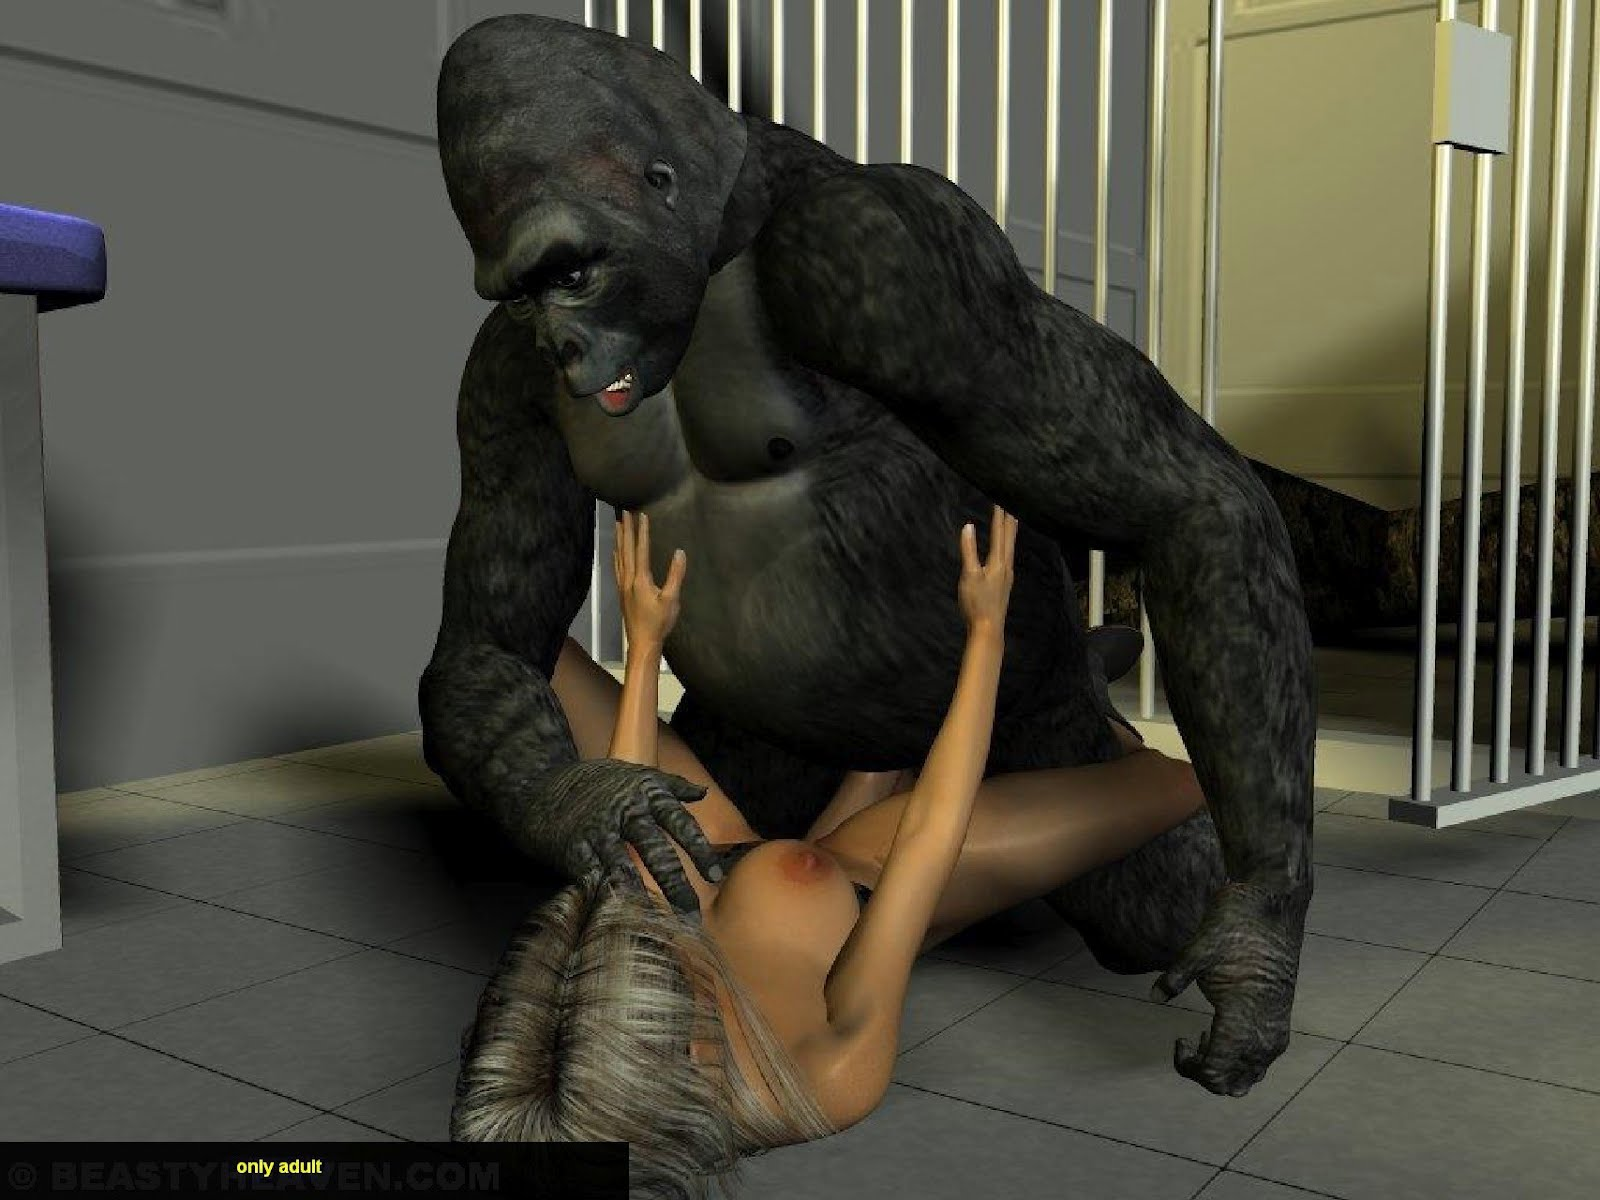 man fucking monkey video download